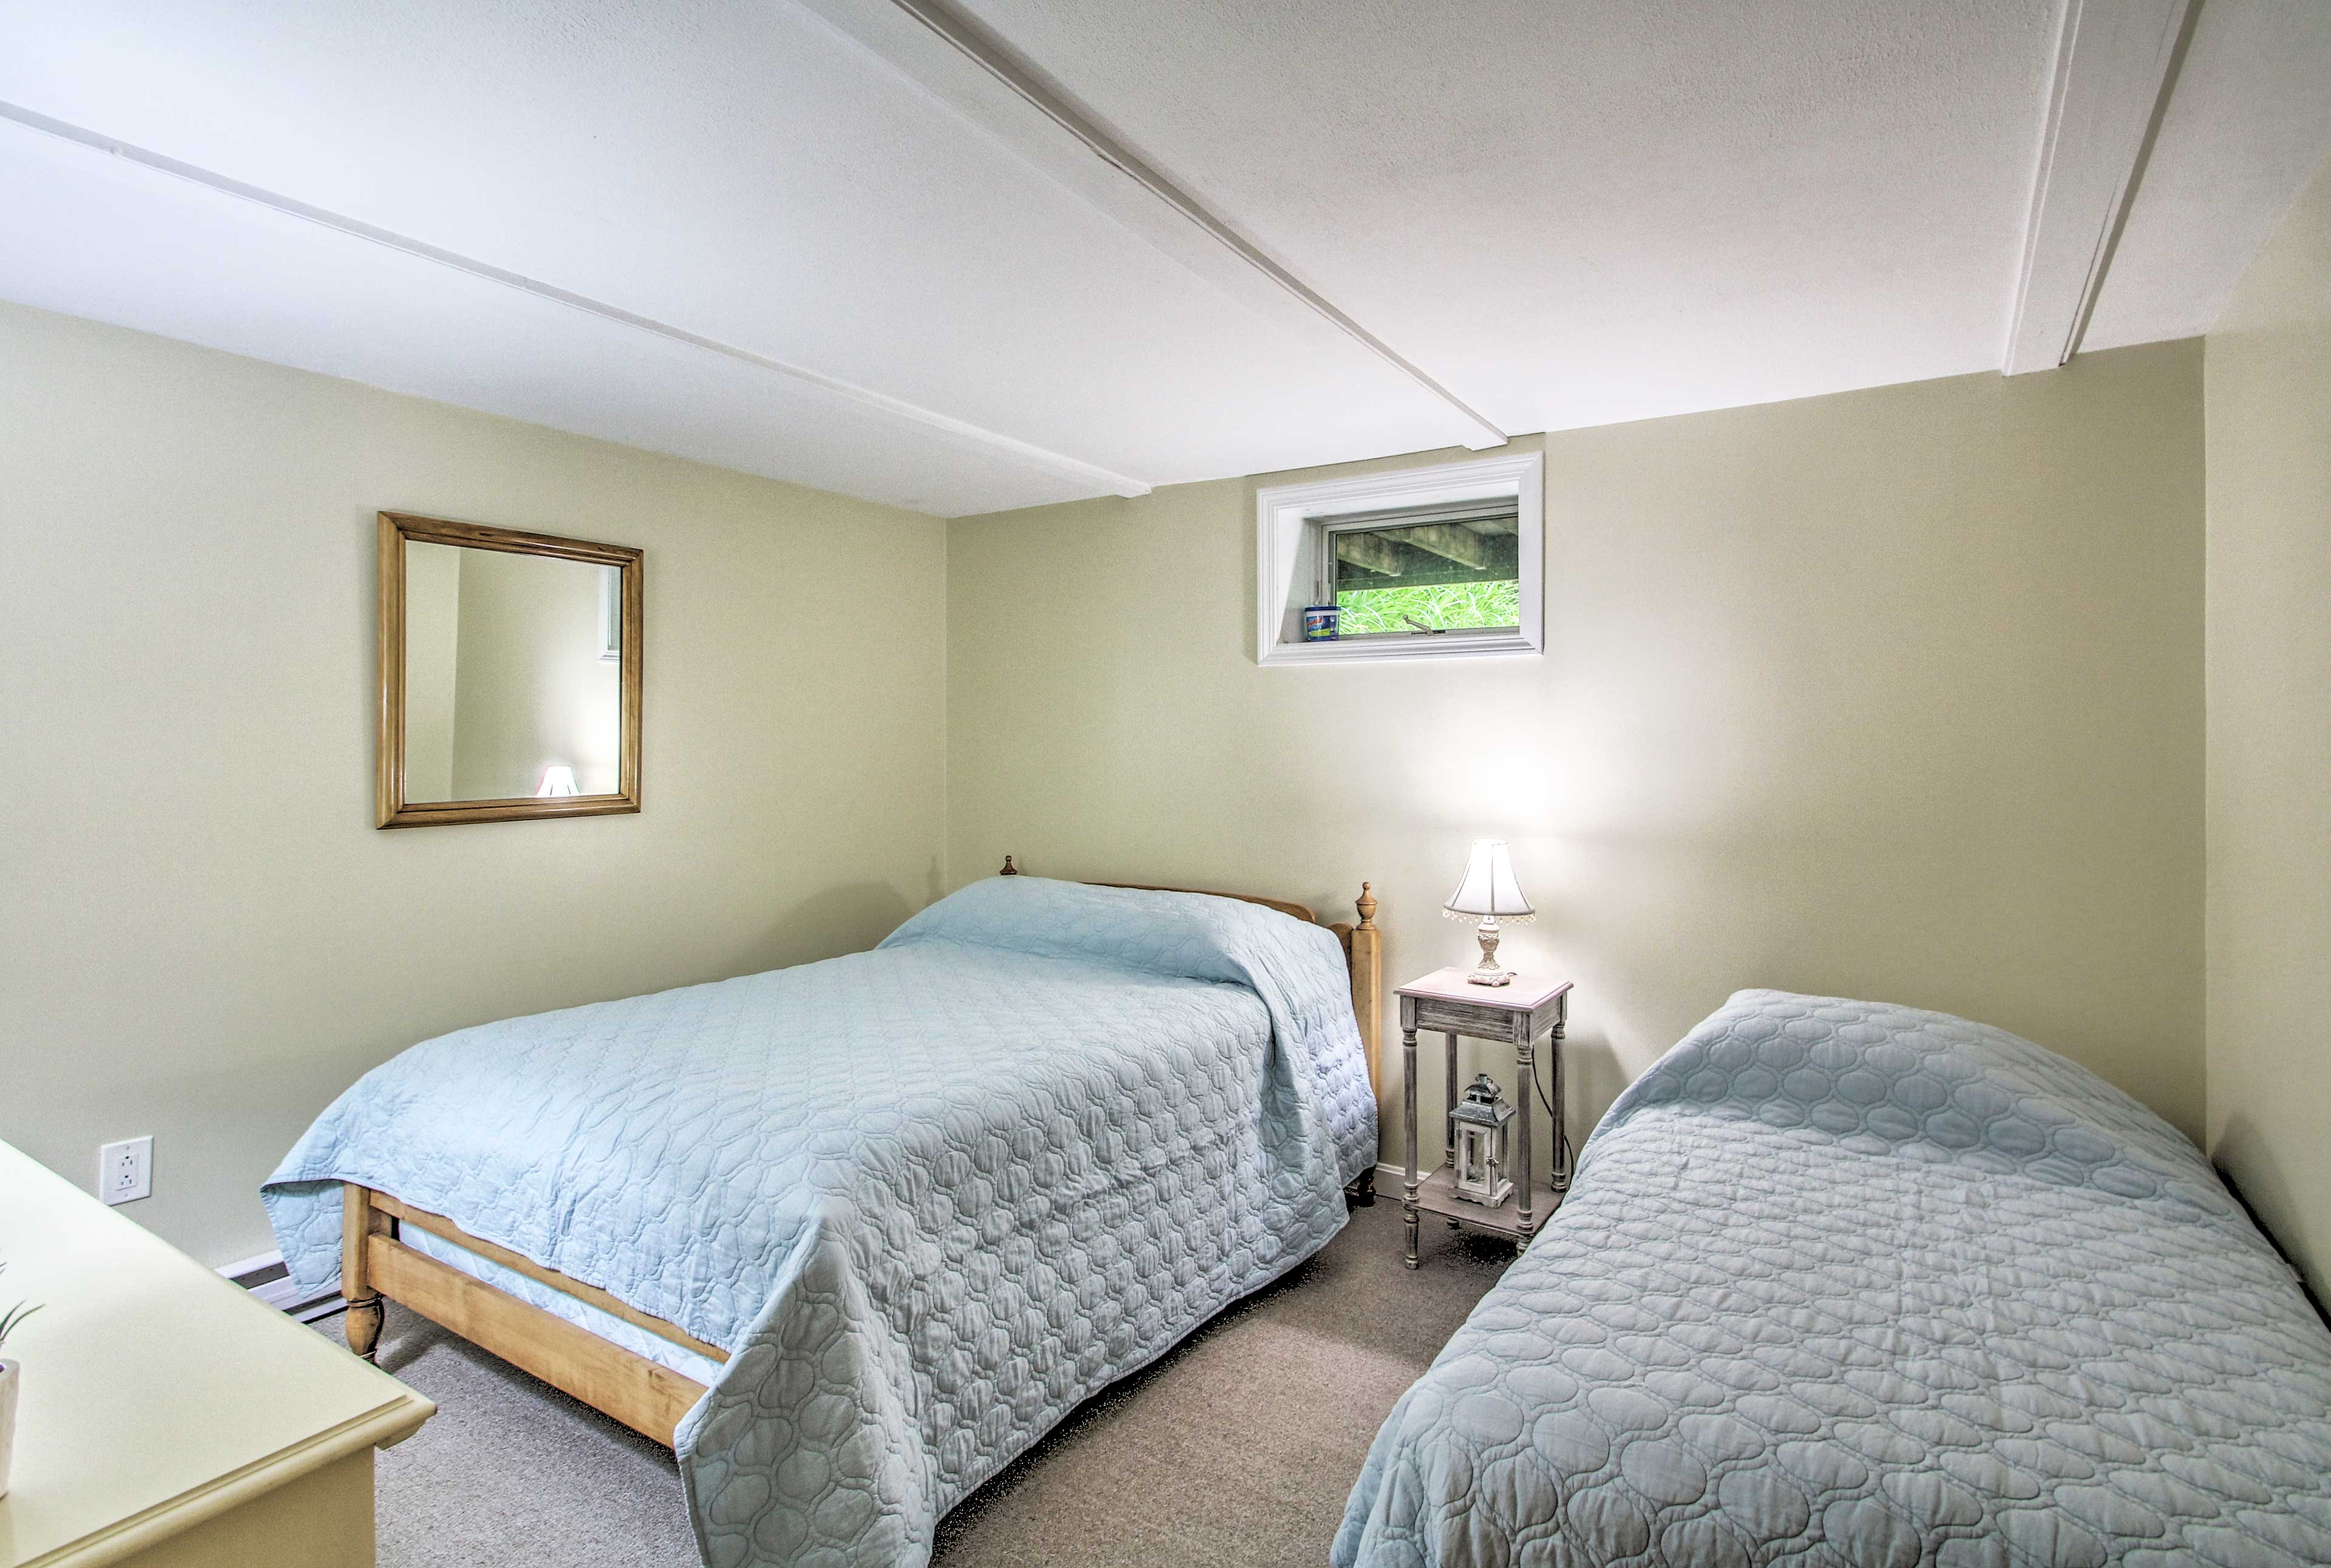 The second bedroom features a full and twin-sized bed.